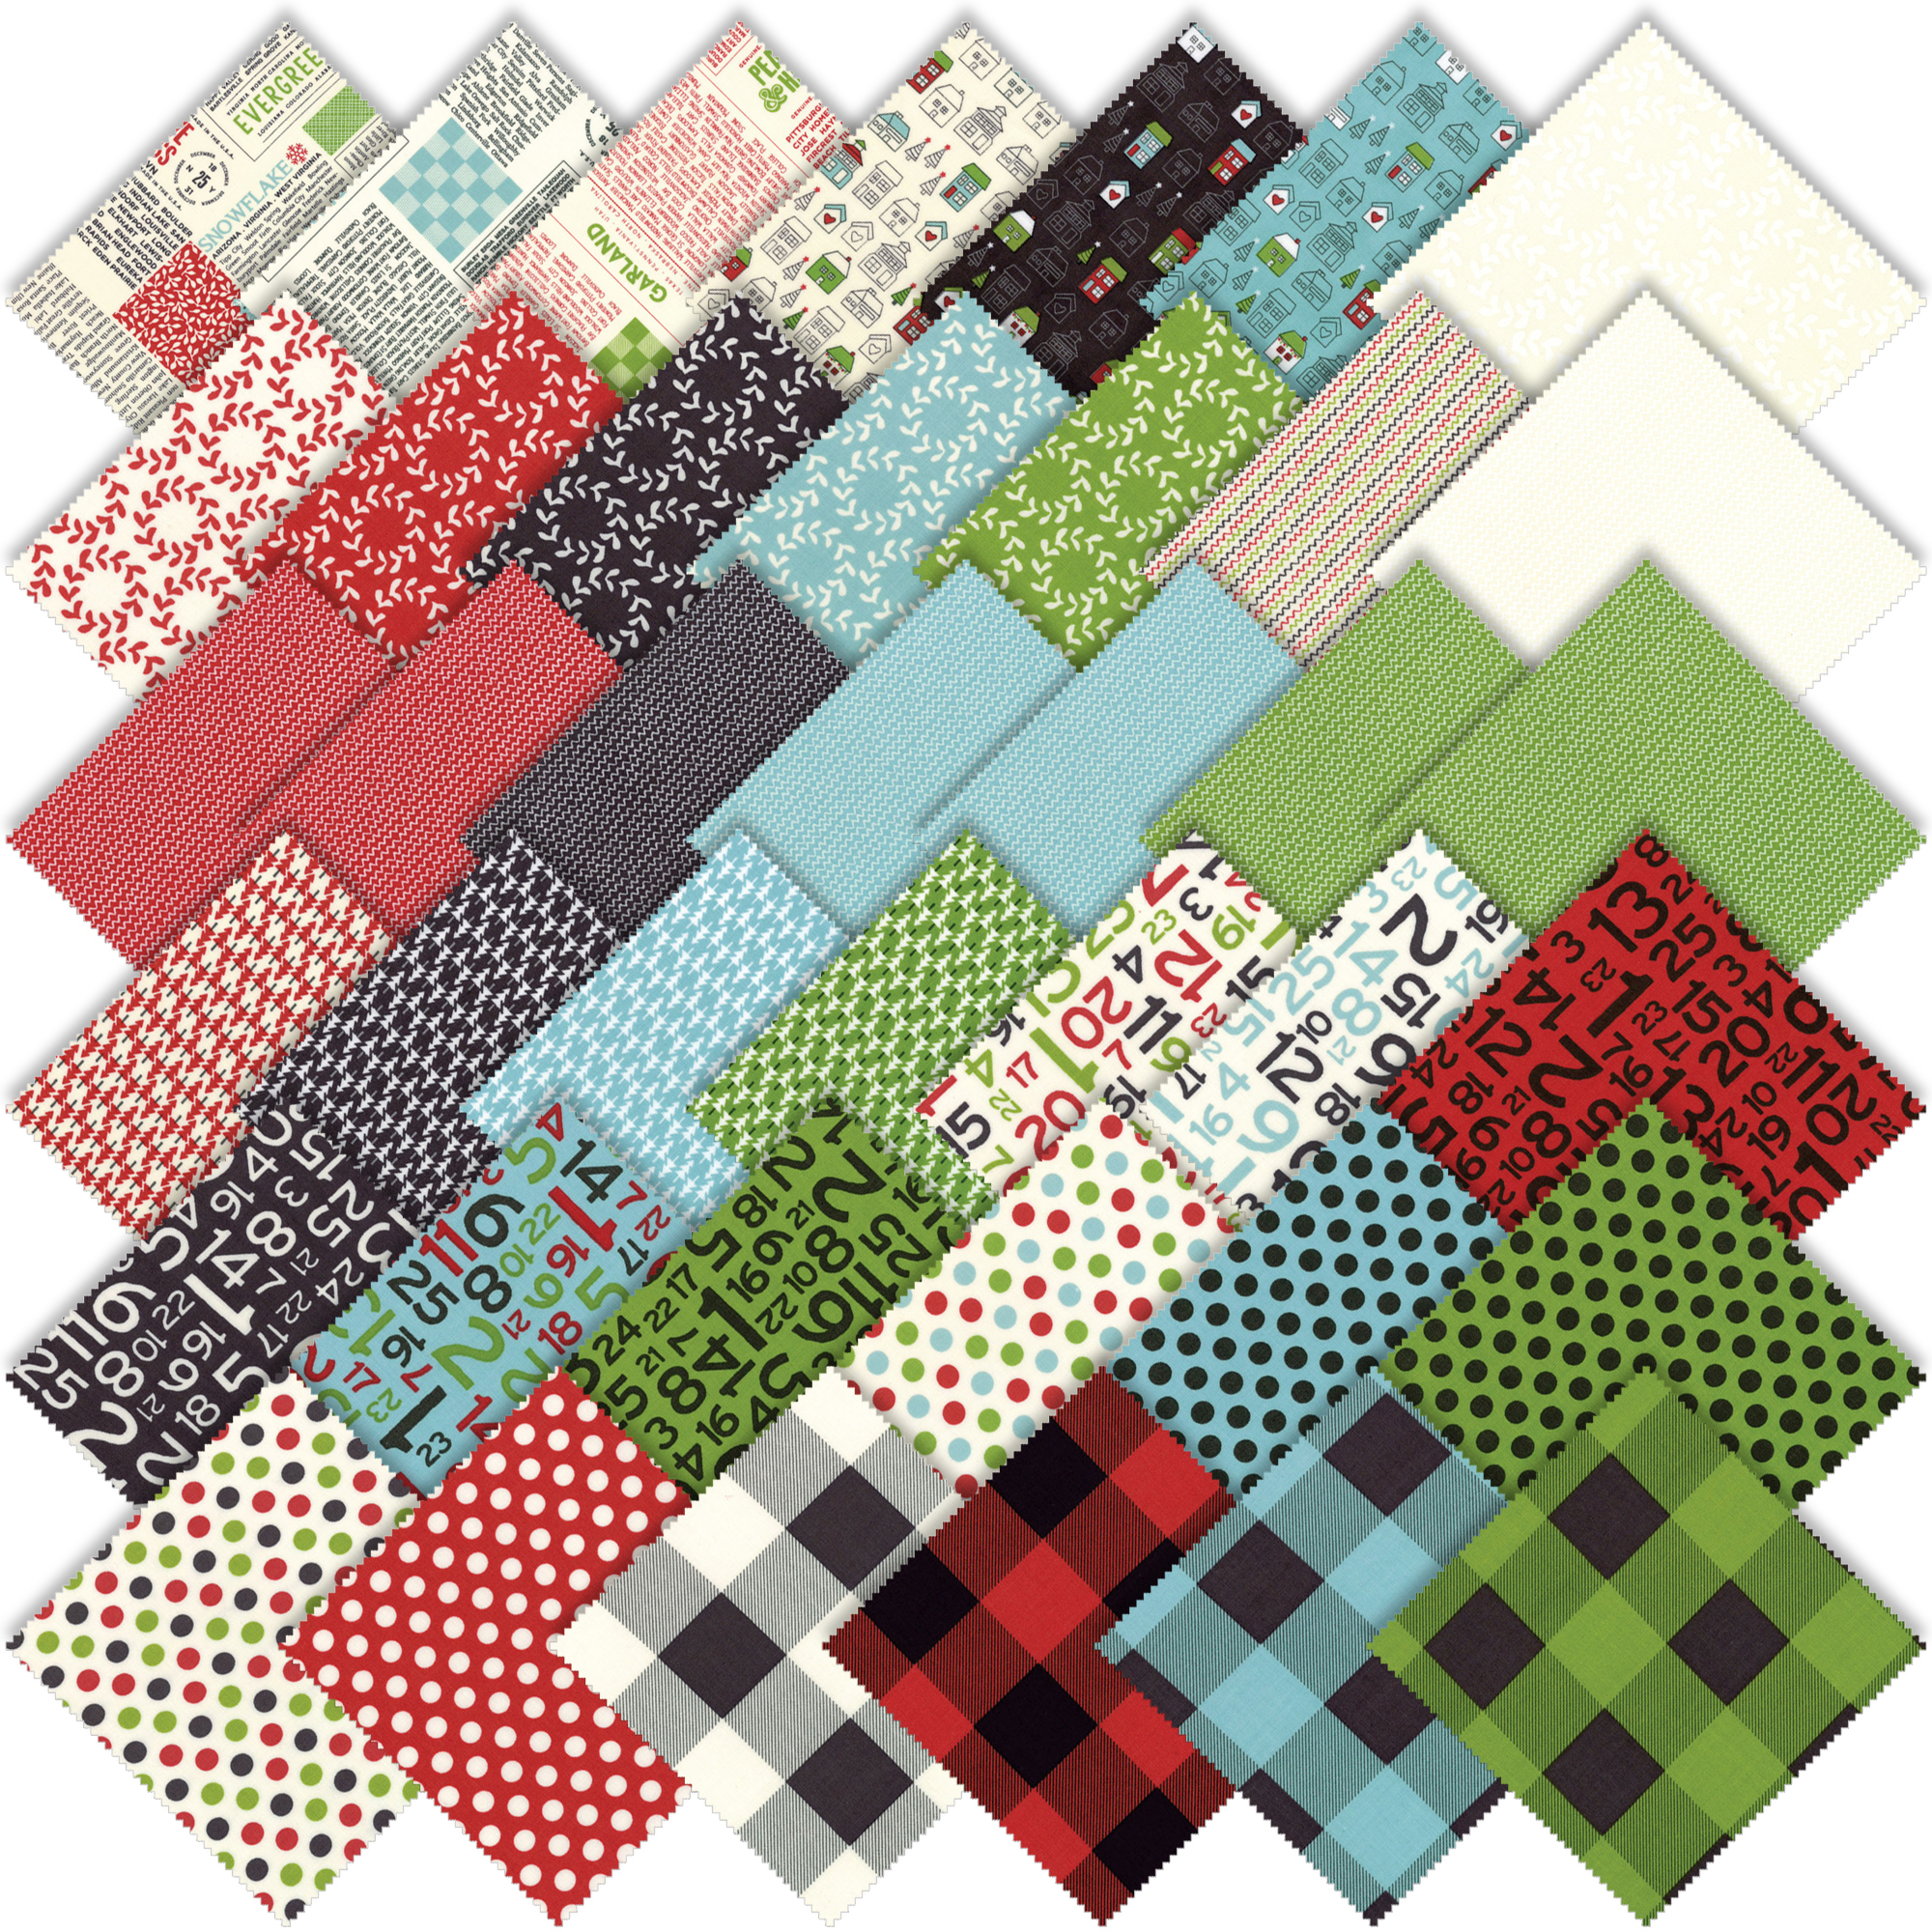 copyright 2018 emerald city fabrics all rights reserved